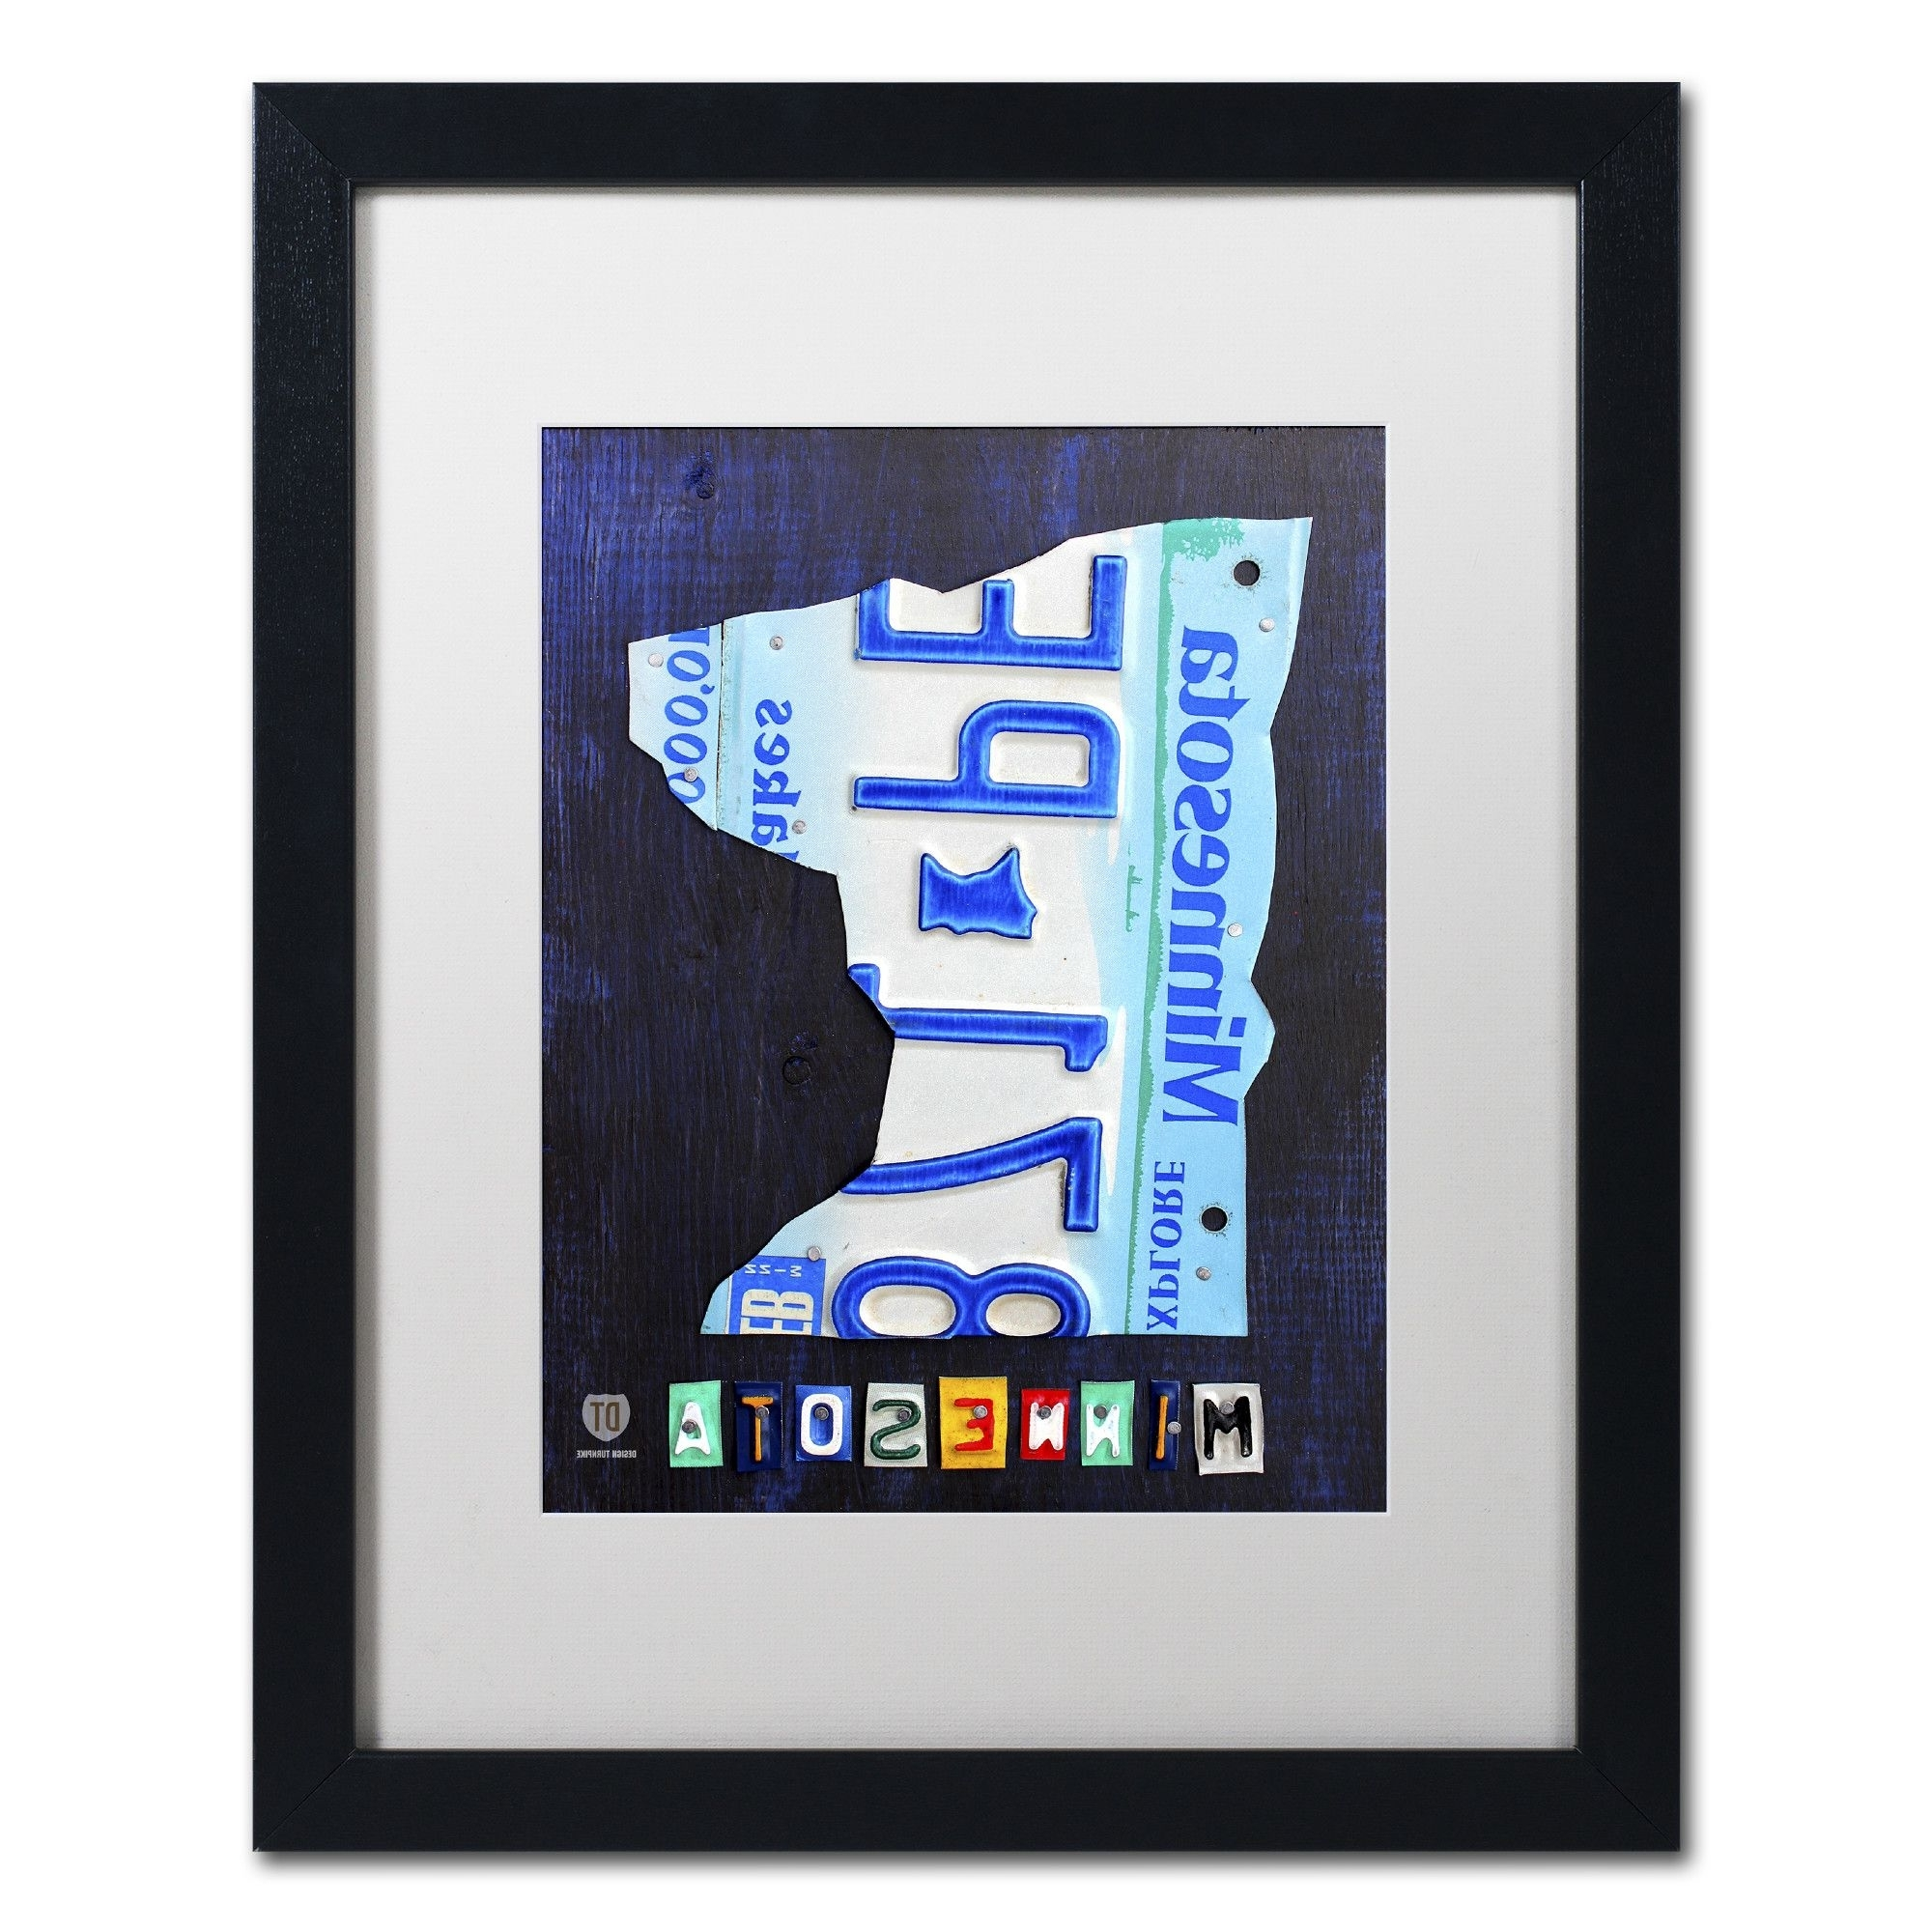 Well Known Minnesota License Plate Mapdesign Turnpike Framed Graphic Art With Regard To License Plate Map Wall Art (Gallery 10 of 20)